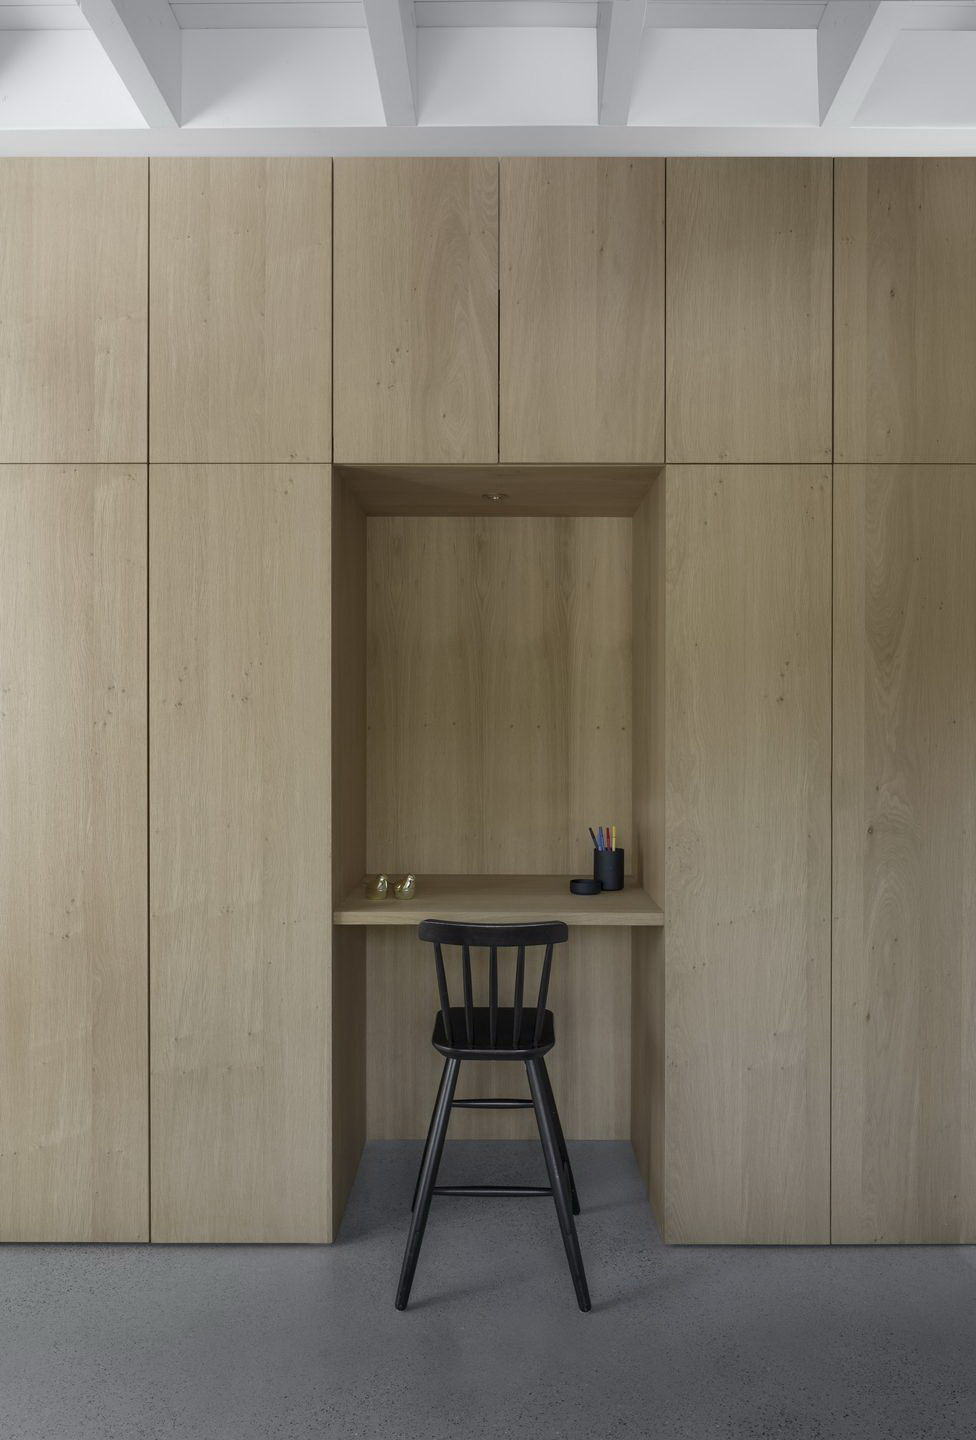 Tiny Holiday Home by i29 interior architects and Chris Collaris